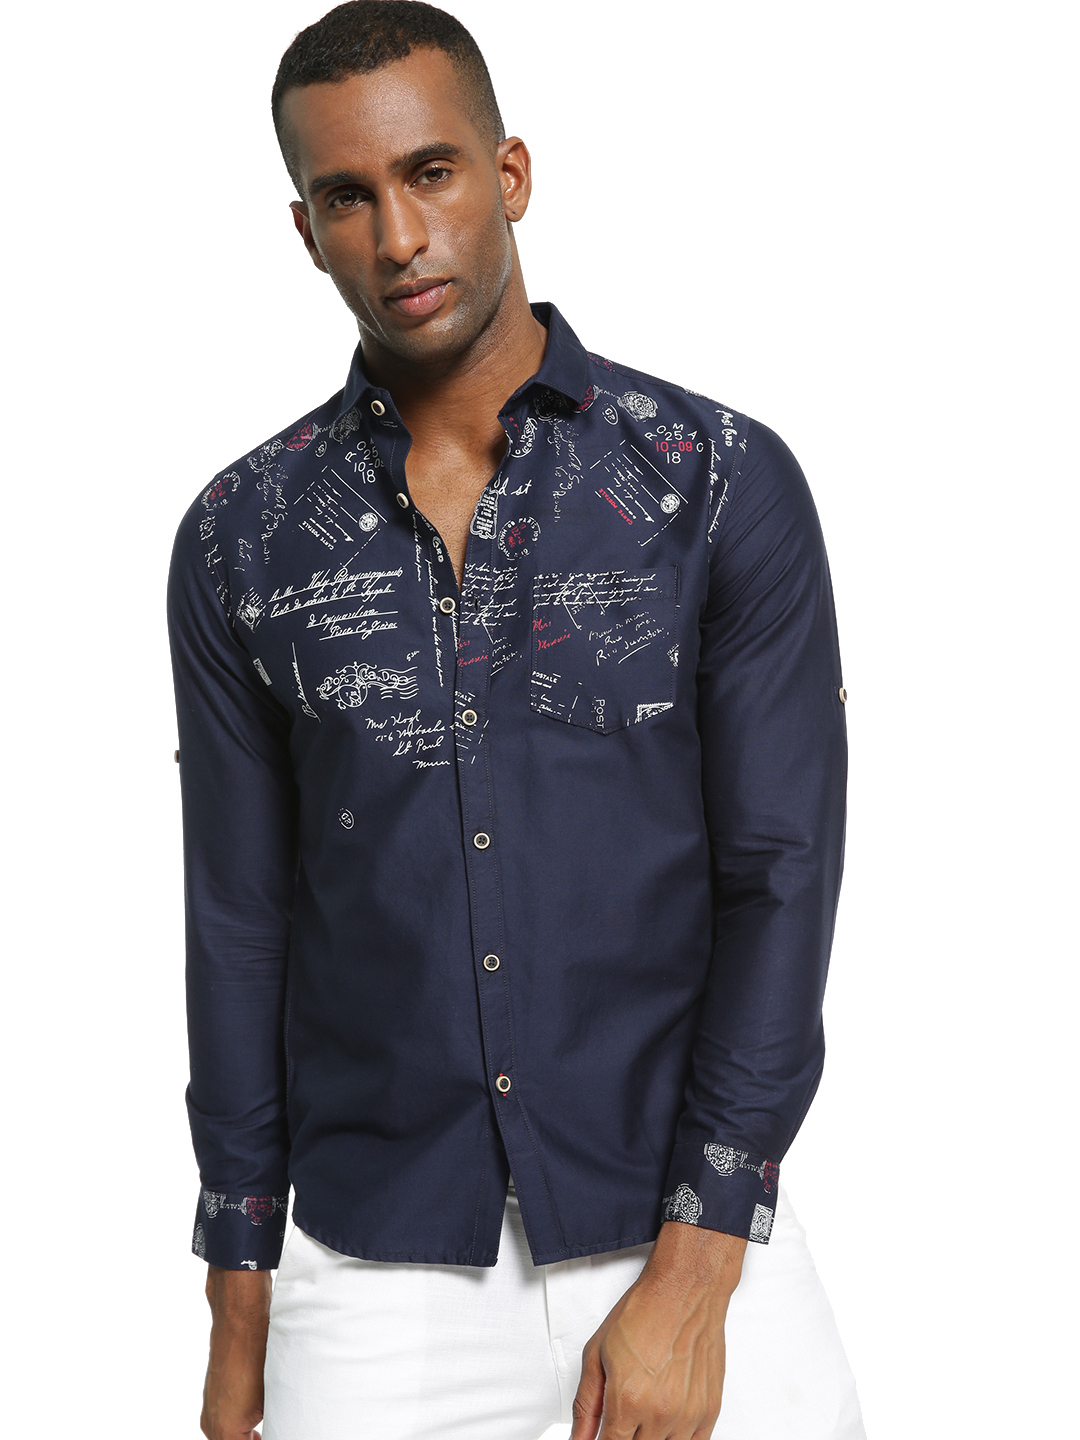 Vulcan Blue Typo Print Pocket Shirt 1